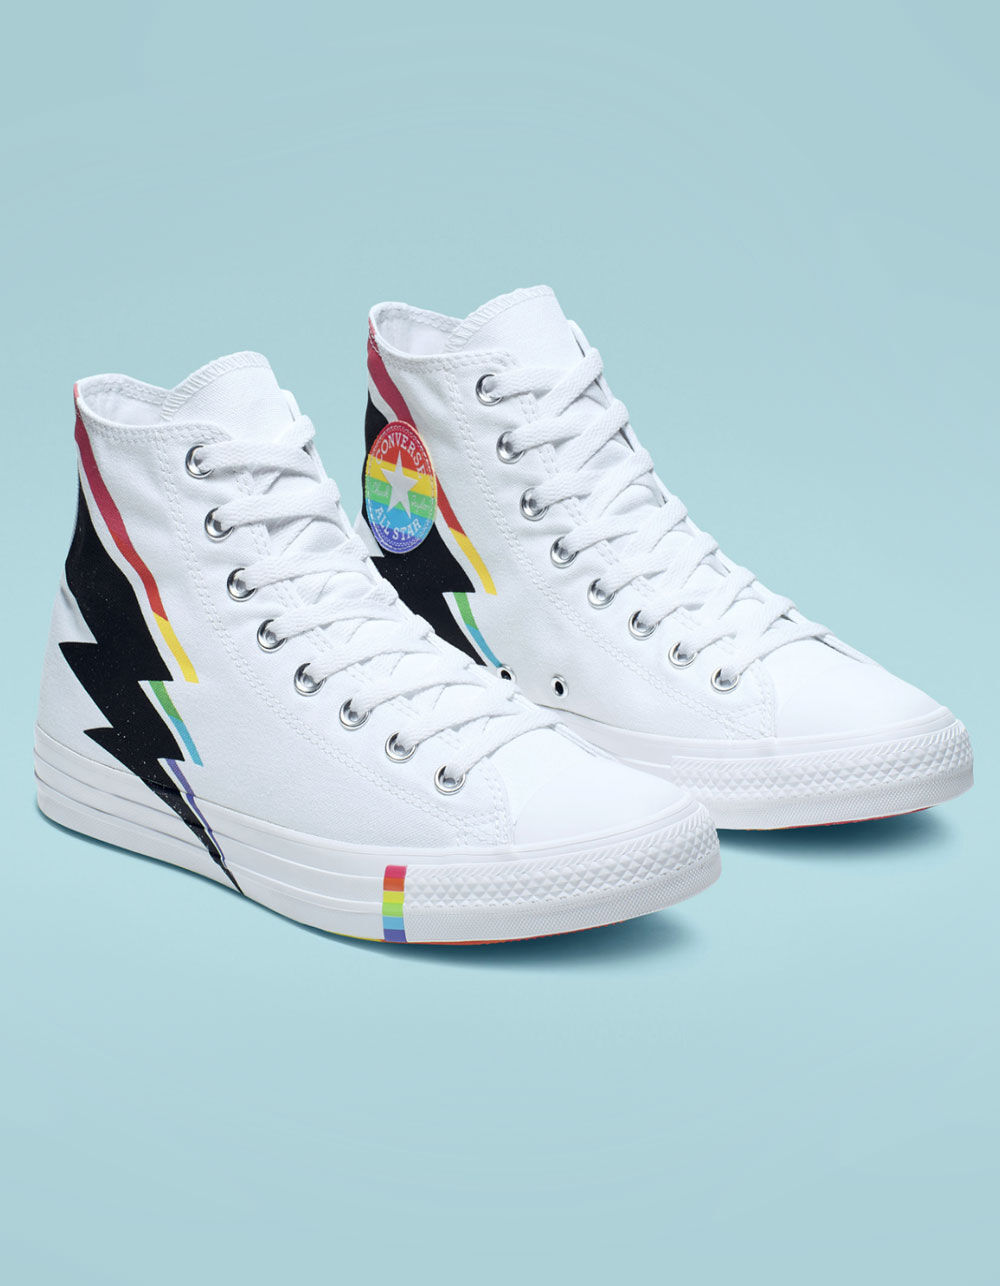 Image of CONVERSE CHUCK TAYLOR ALL STAR PRIDE WHITE HIGH TOP SHOES